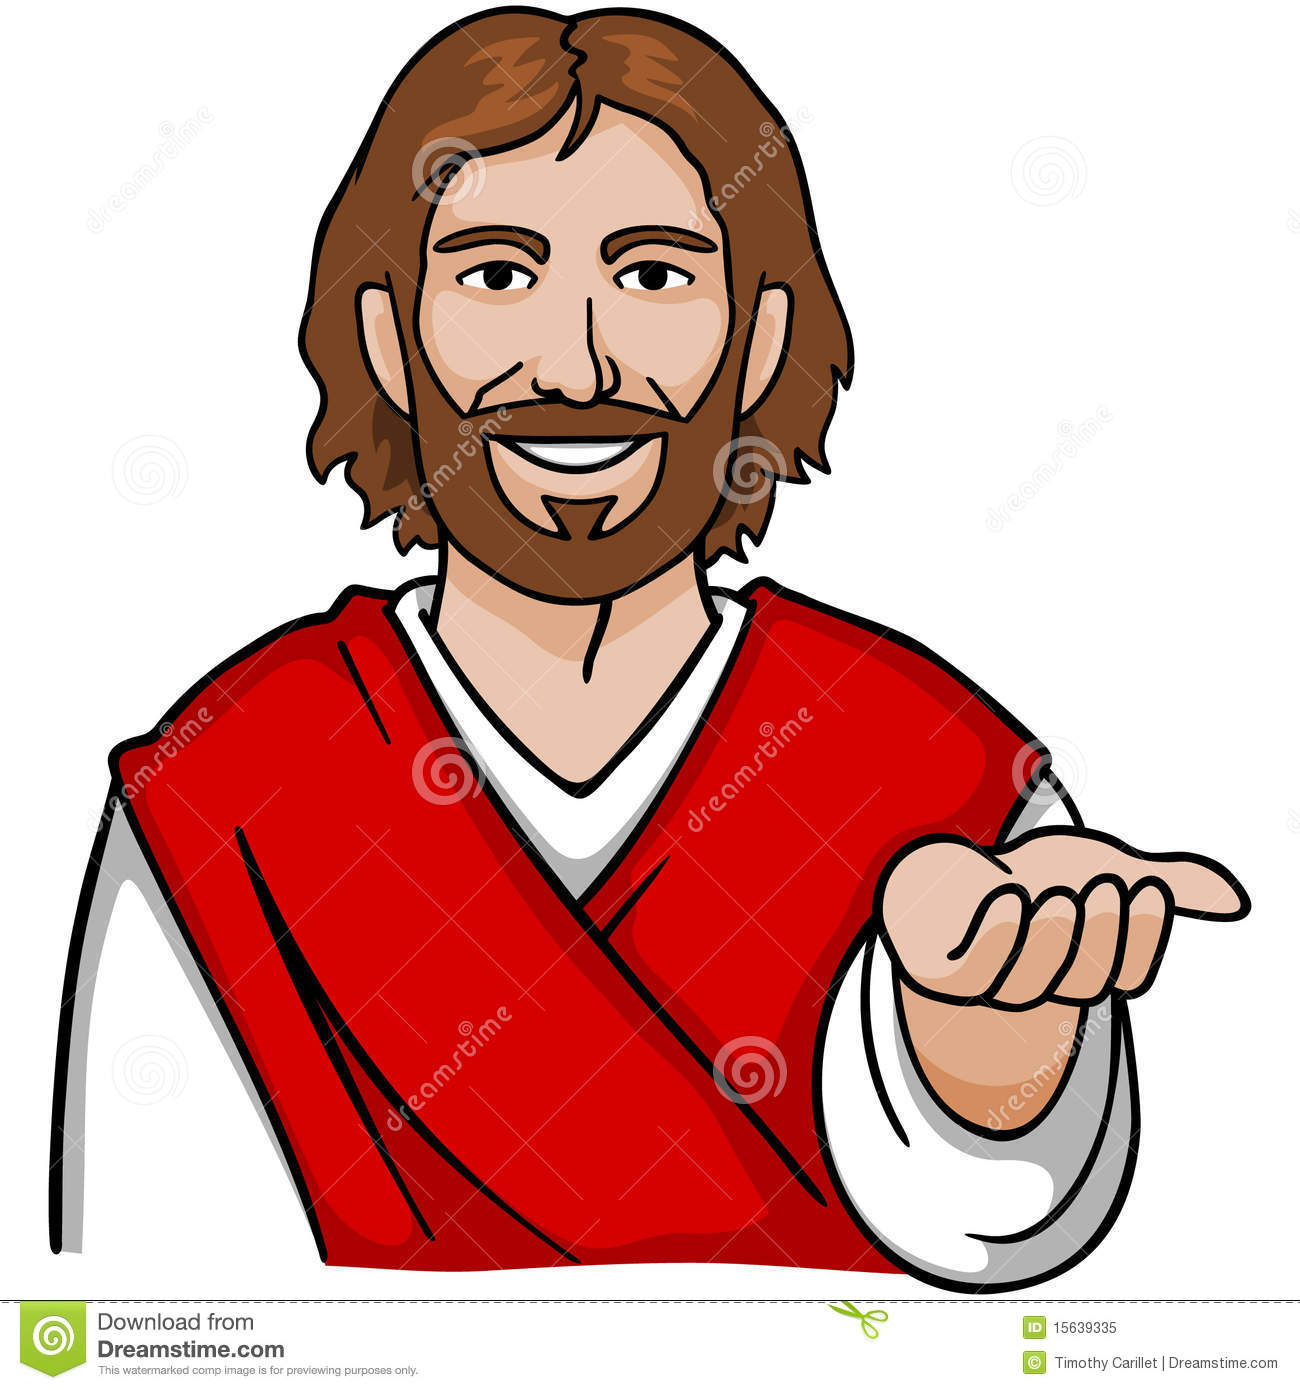 Clip Art Jesus Clip Art jesus stock illustrations 15827 open hand royalty free photo